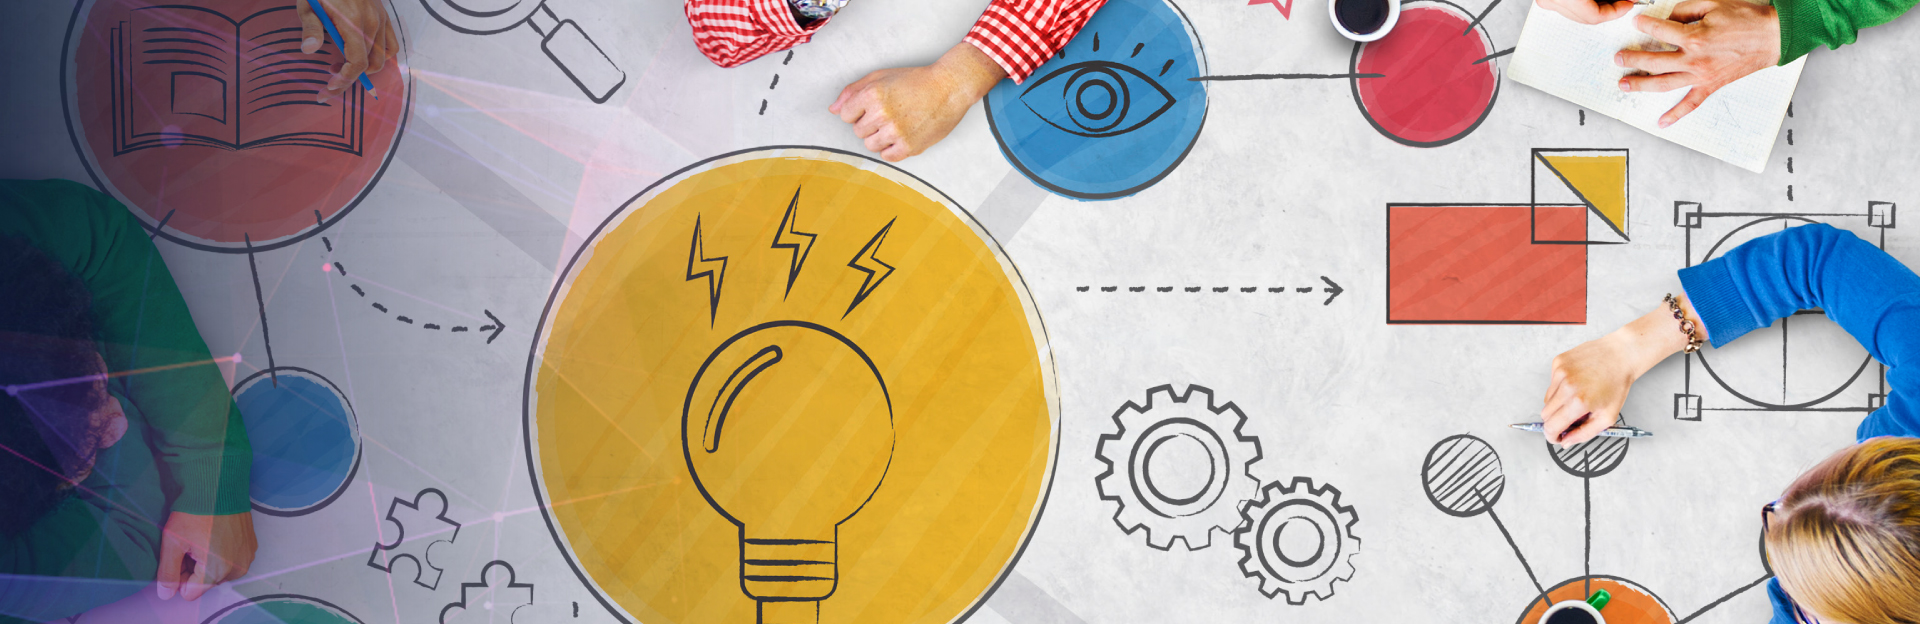 Embracing EdTech to Futurize Learning